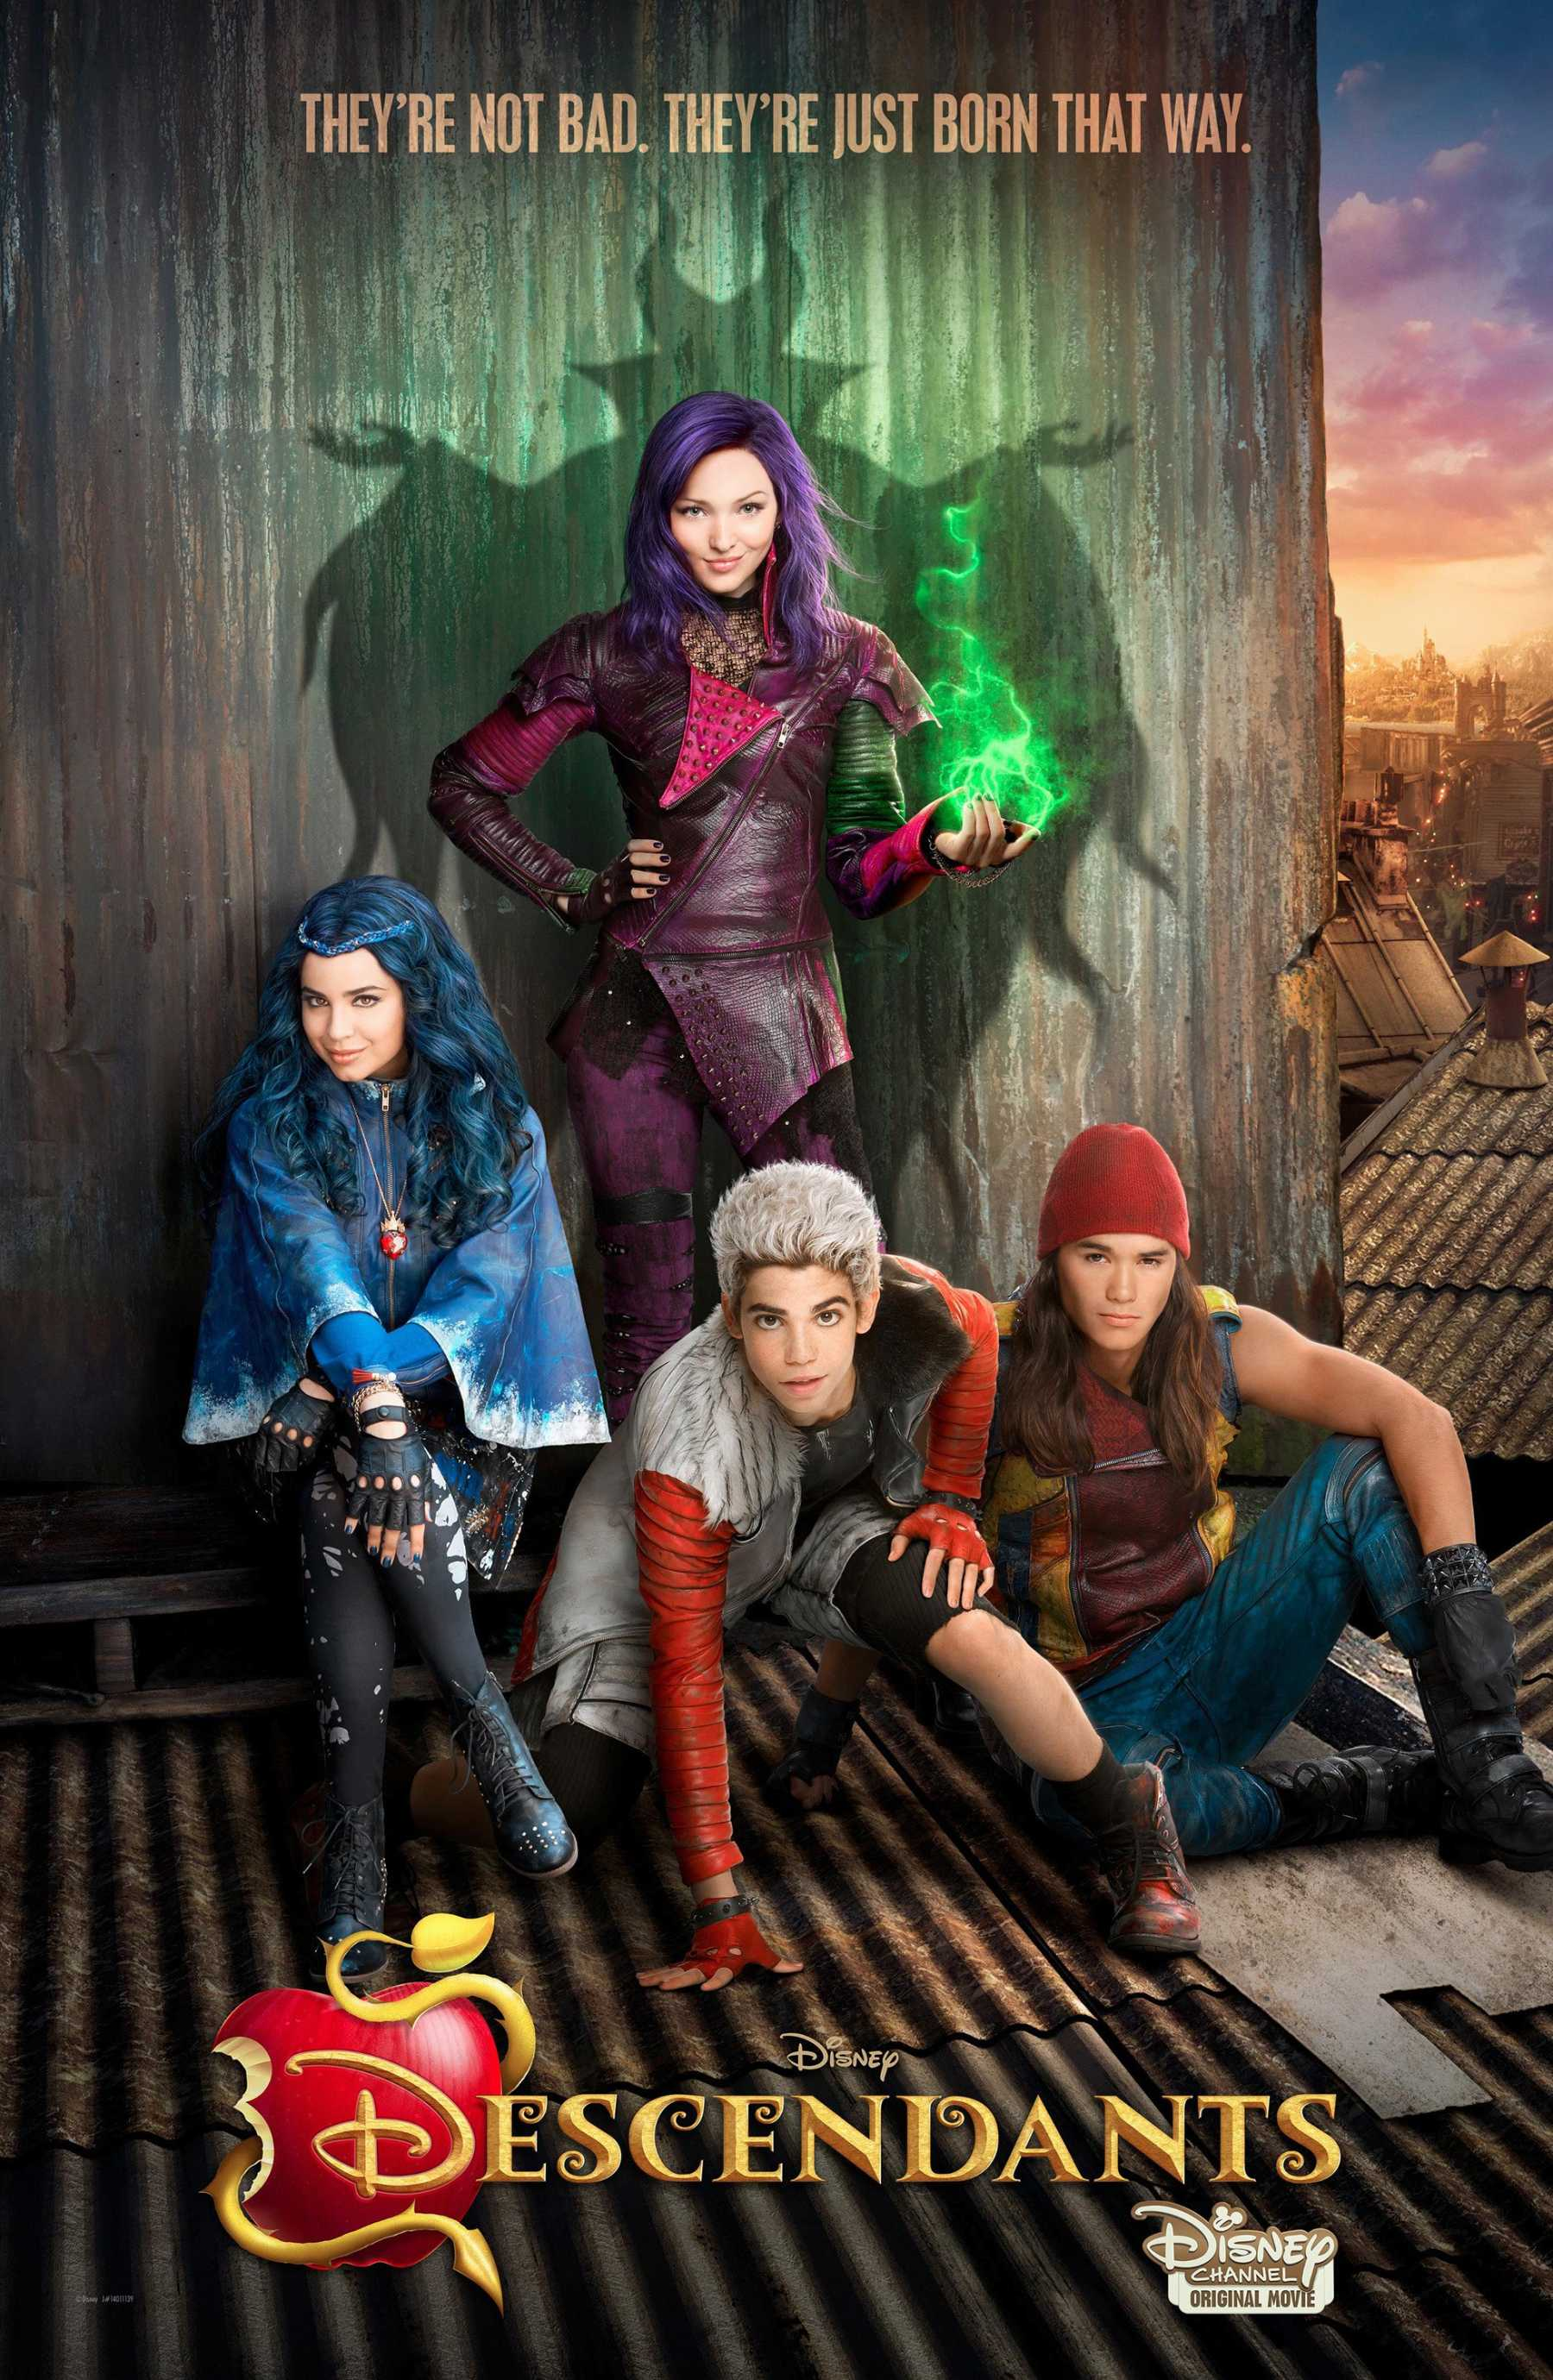 High School Musical Homecoming For Disney's Descendants | High School Musical